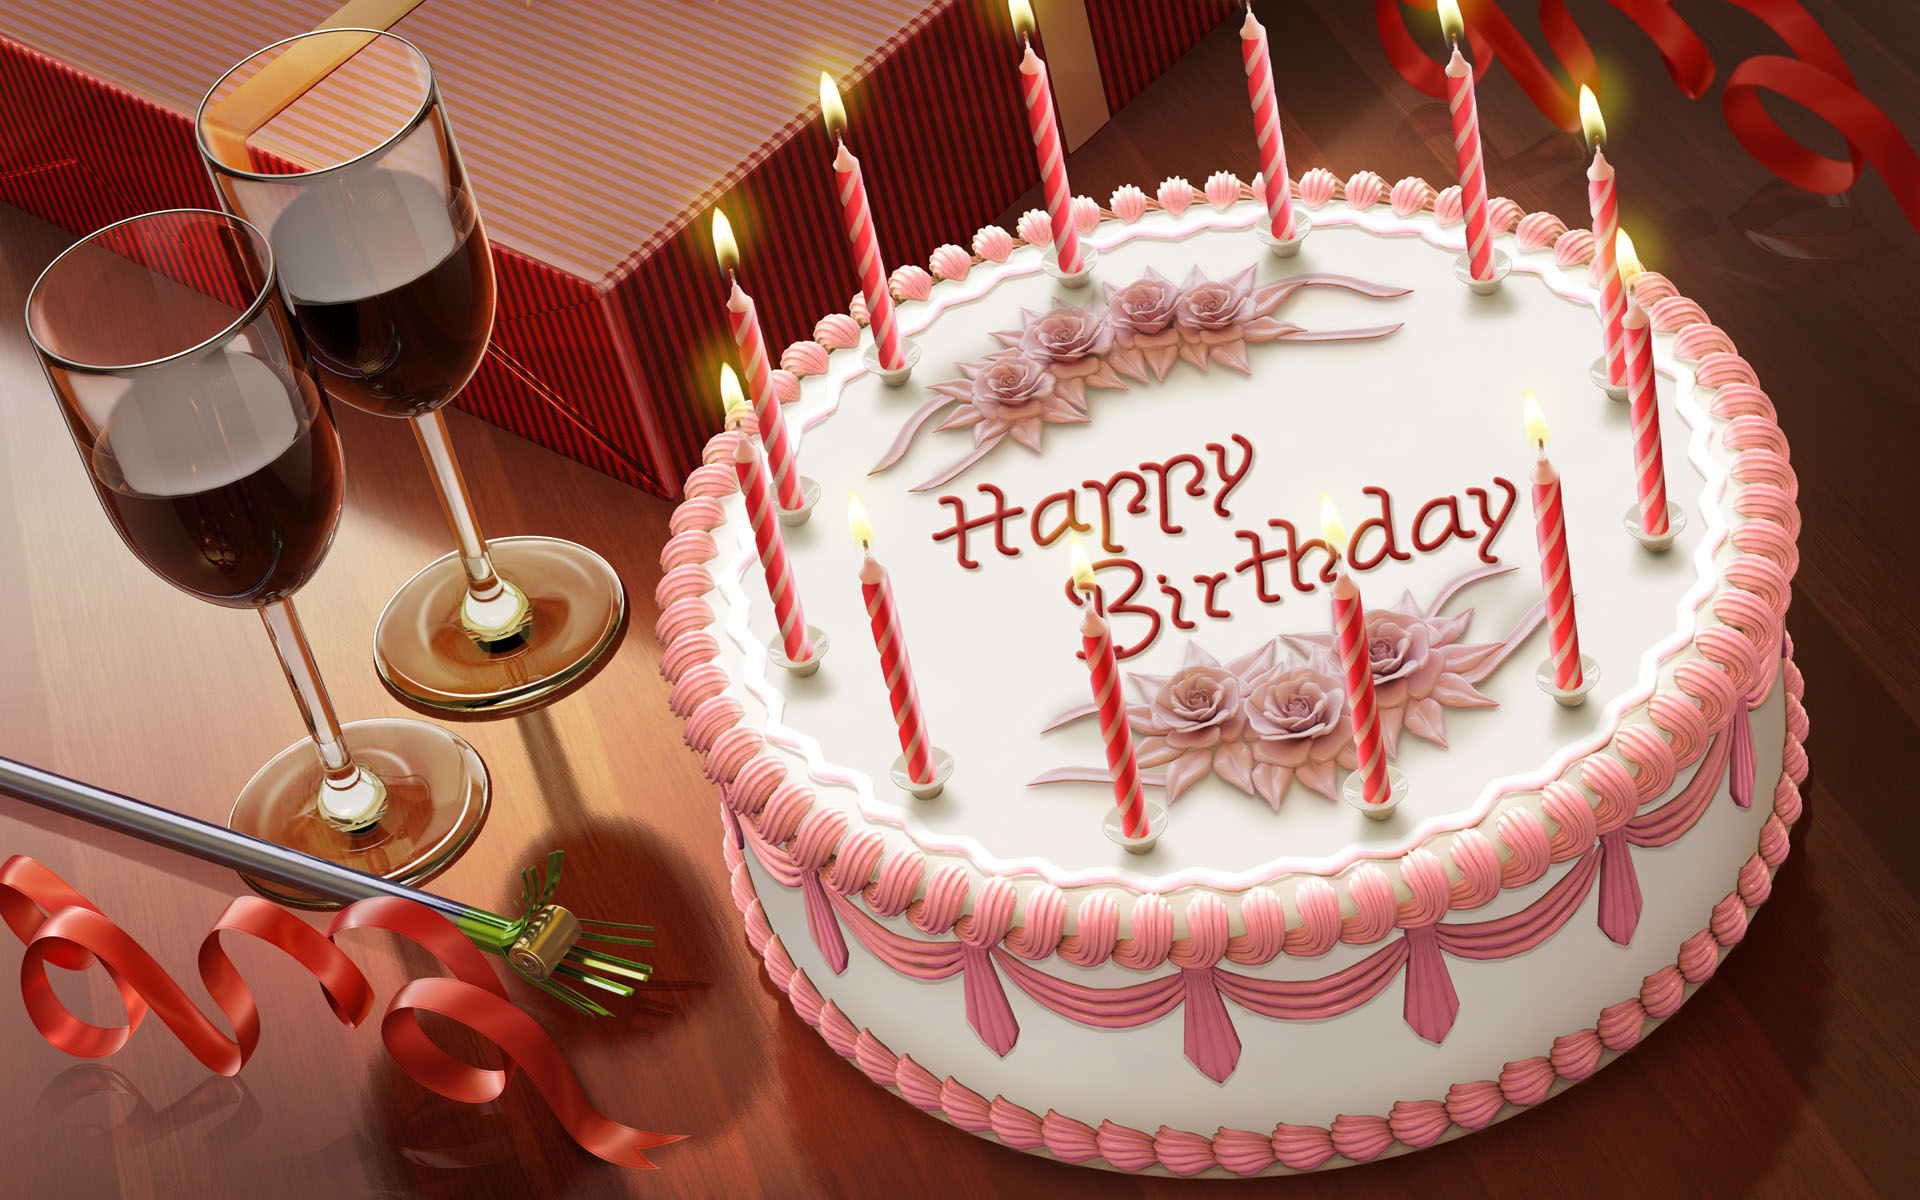 265626,xcitefun-happy-birthday-admin - Happy Birthday Chicogon - Special Dates and Events